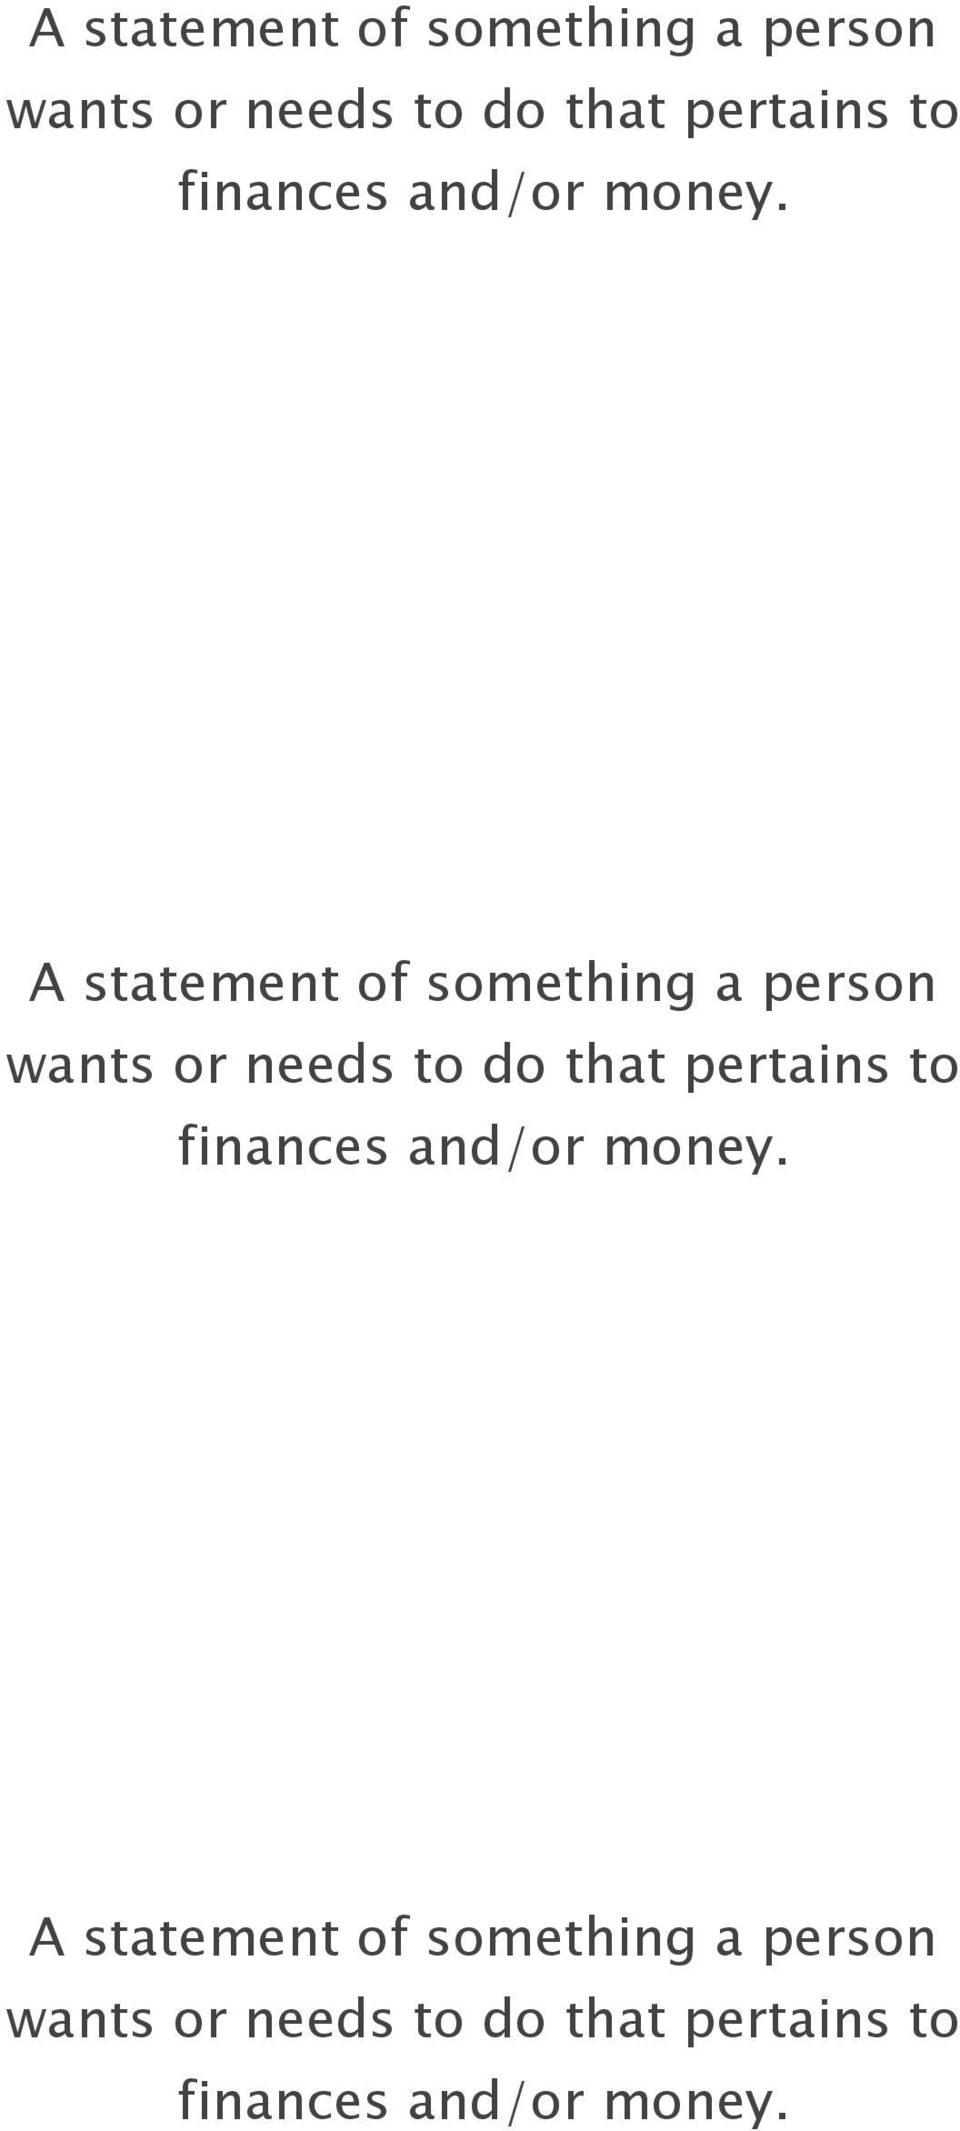 to finances and/or money.